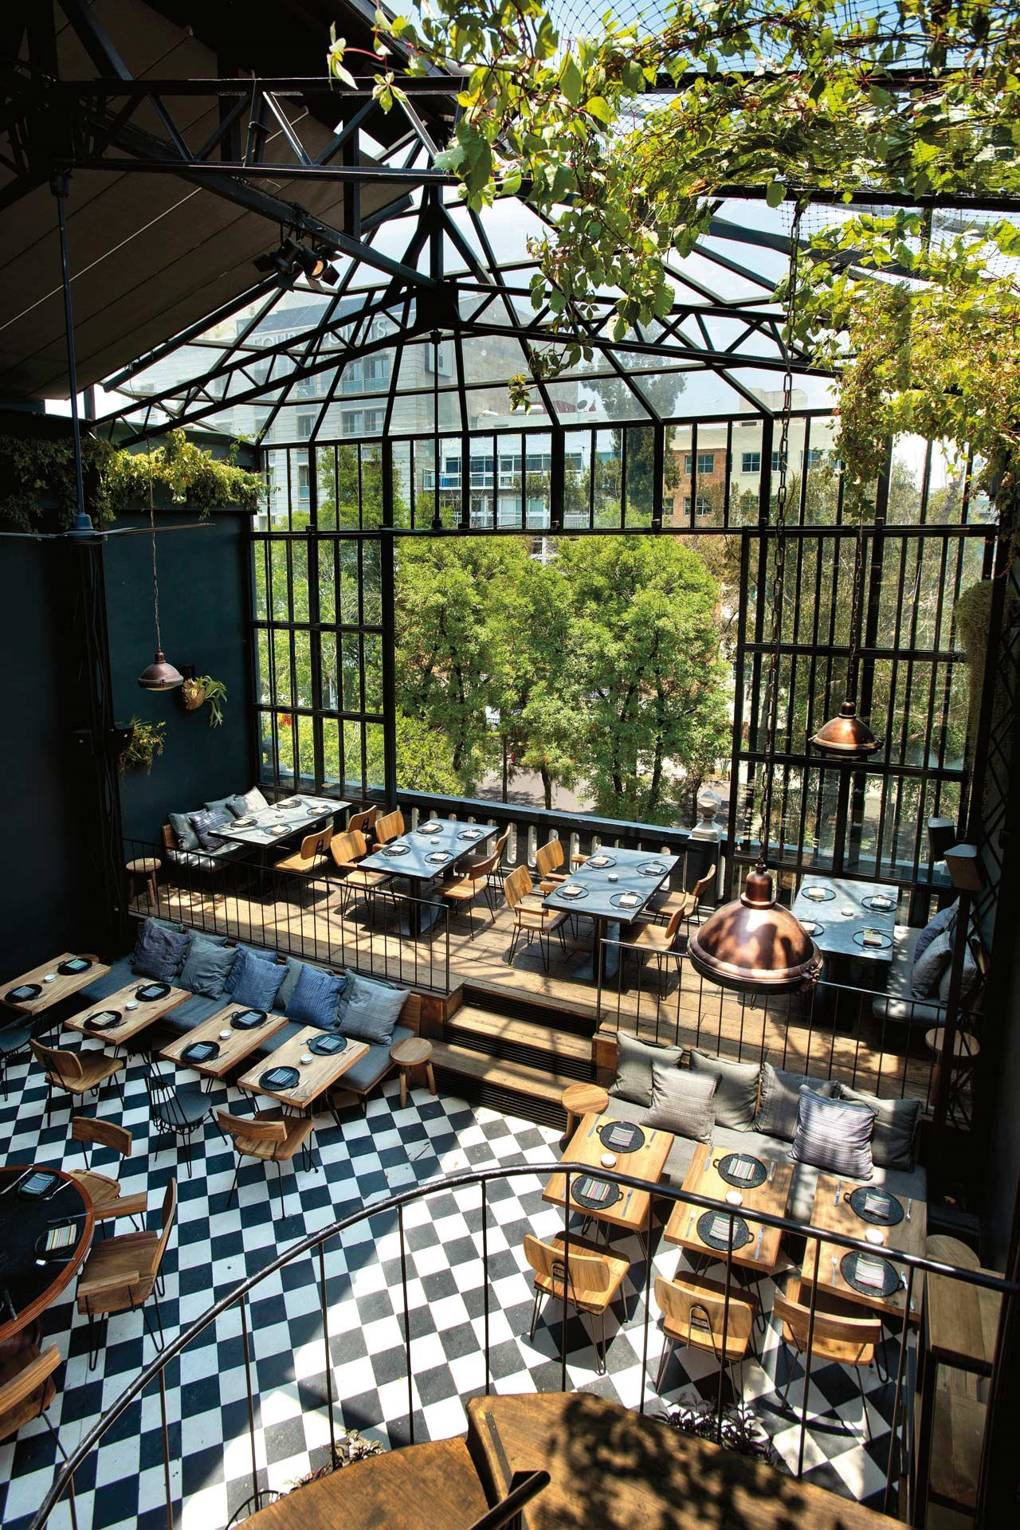 the best restaurants in roma norte mexico city cn traveller rh cntraveller com roma norte mexico city/birria recipe roma norte mexico city hostel